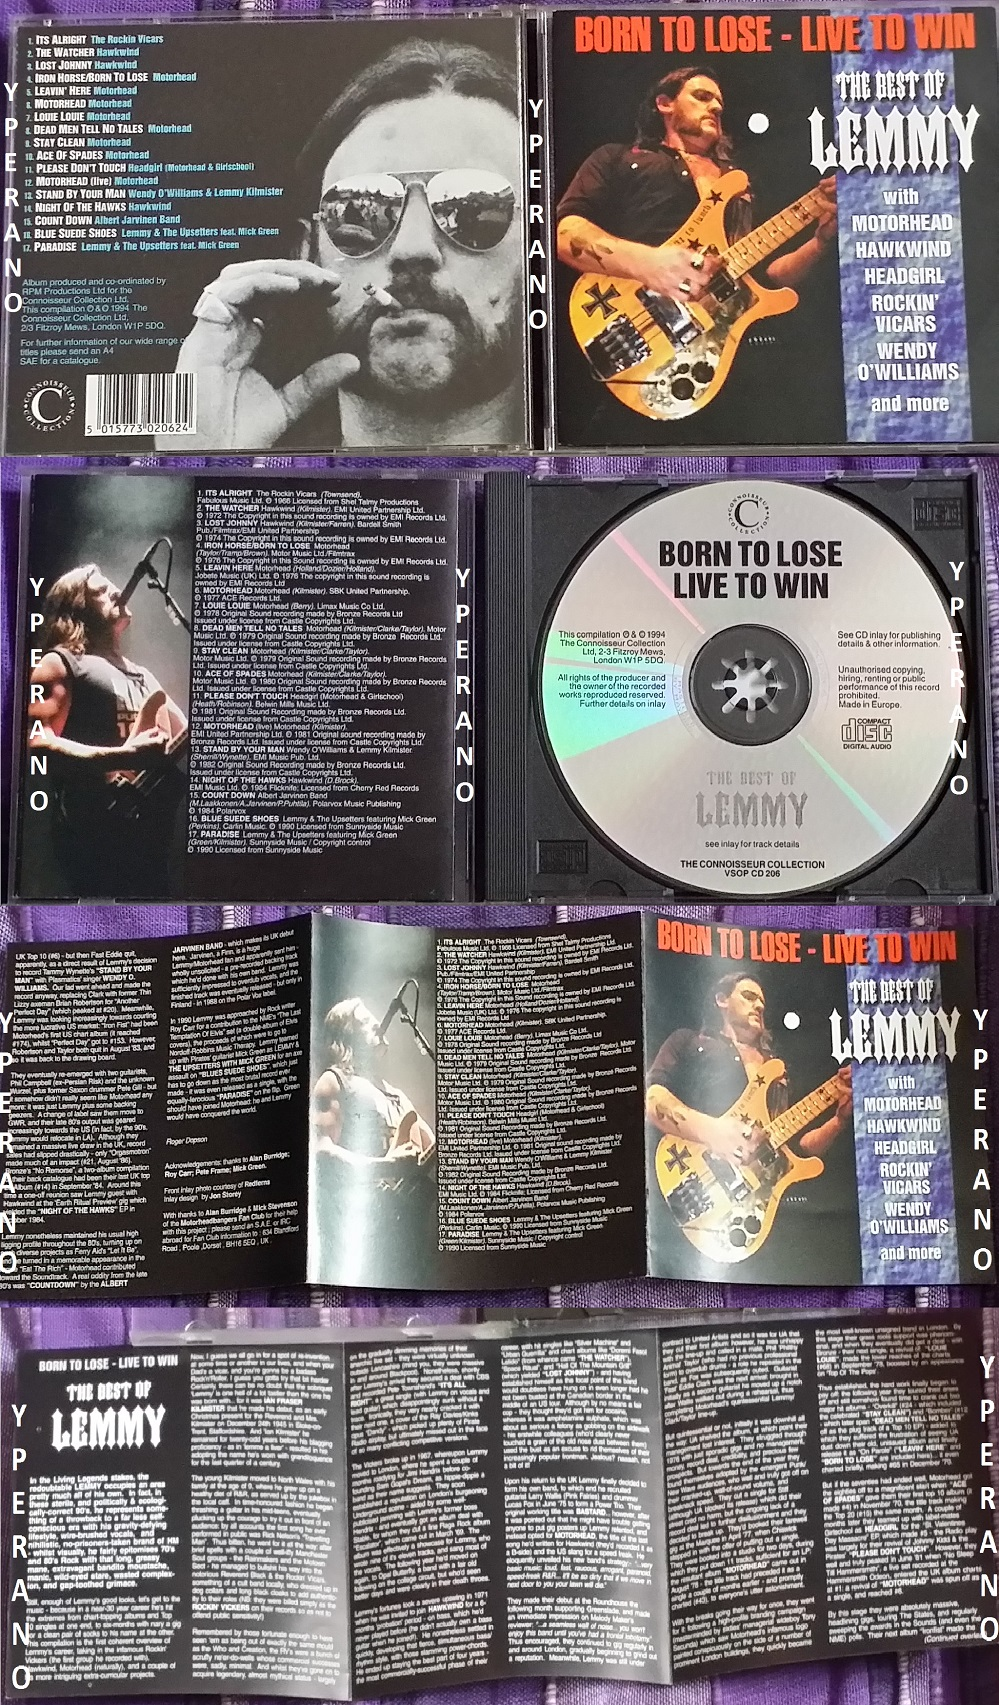 MOTORHEAD: Best Of Lemmy Born to lose - Live to win CD  Rare 1994 UK  Check  audio samples  Rockin Vicars, Hawkwind, Headgirl, Jarvinen Band,